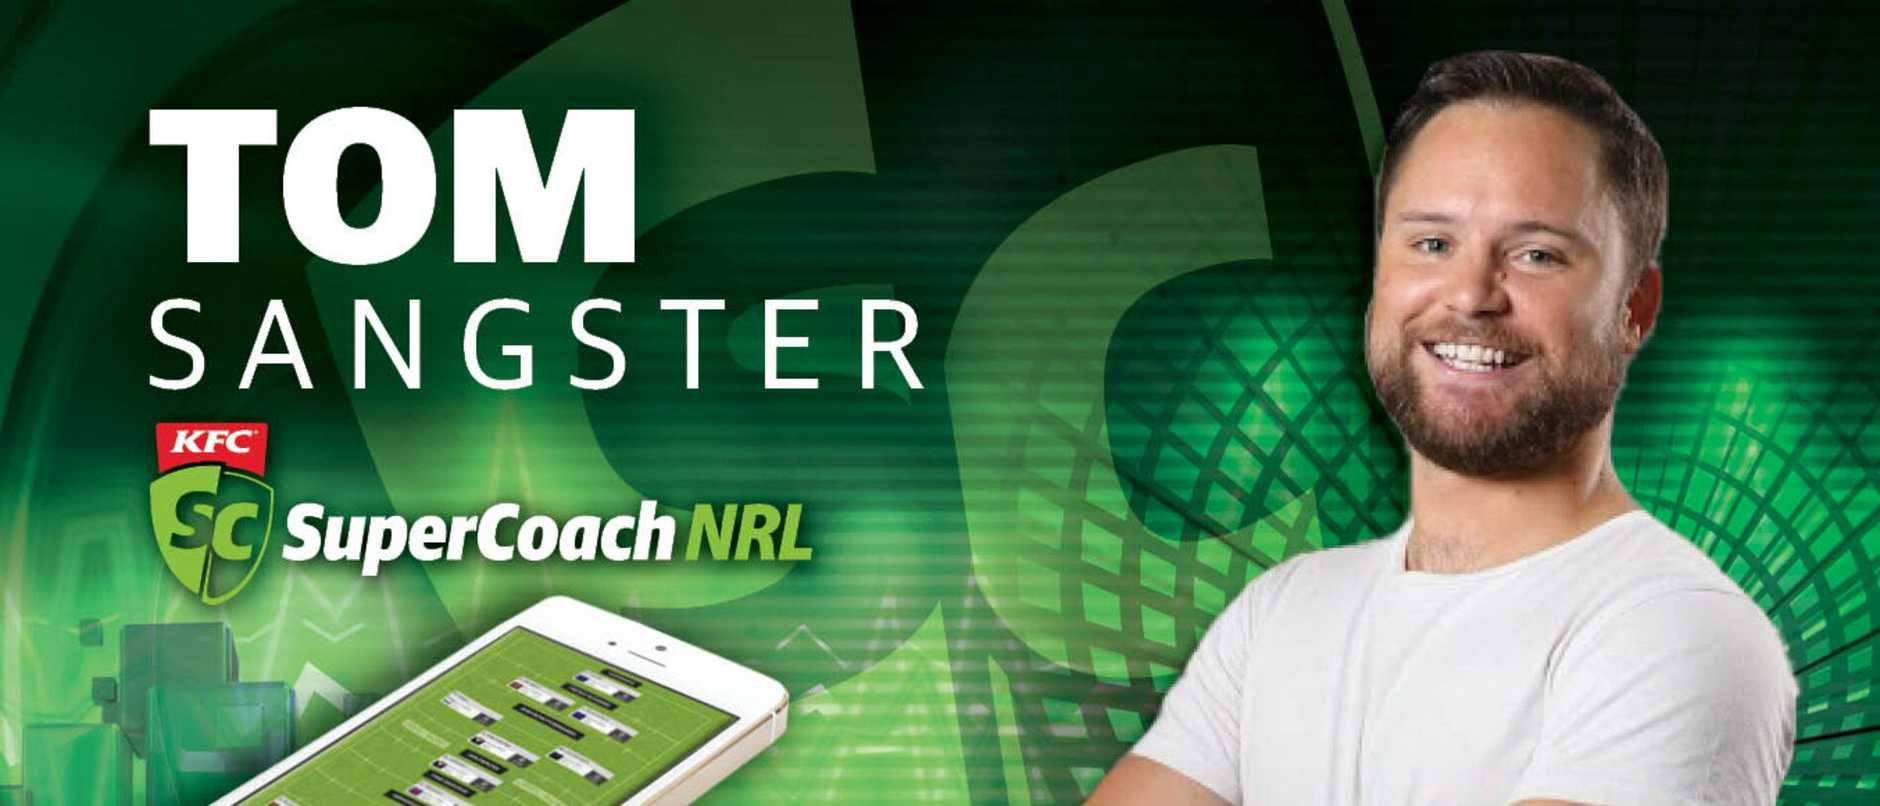 KFC SuperCoach NRL 2020: Tom Sangster's team revealed